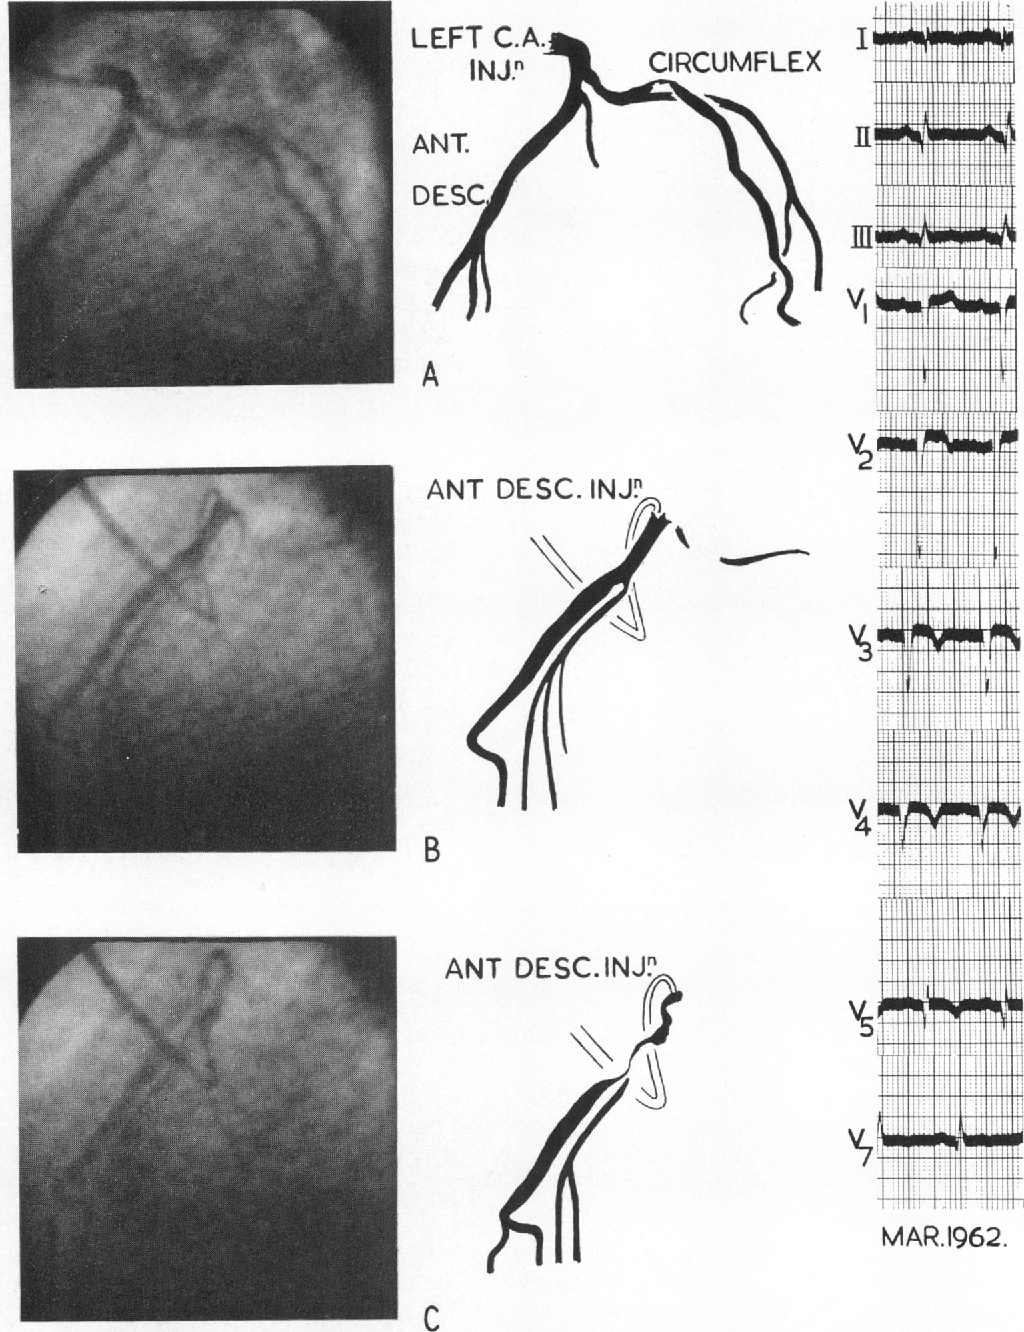 FIG. 6.-Case 15. (A) A frame from a cine film taken during an injection into the left coronary artery.